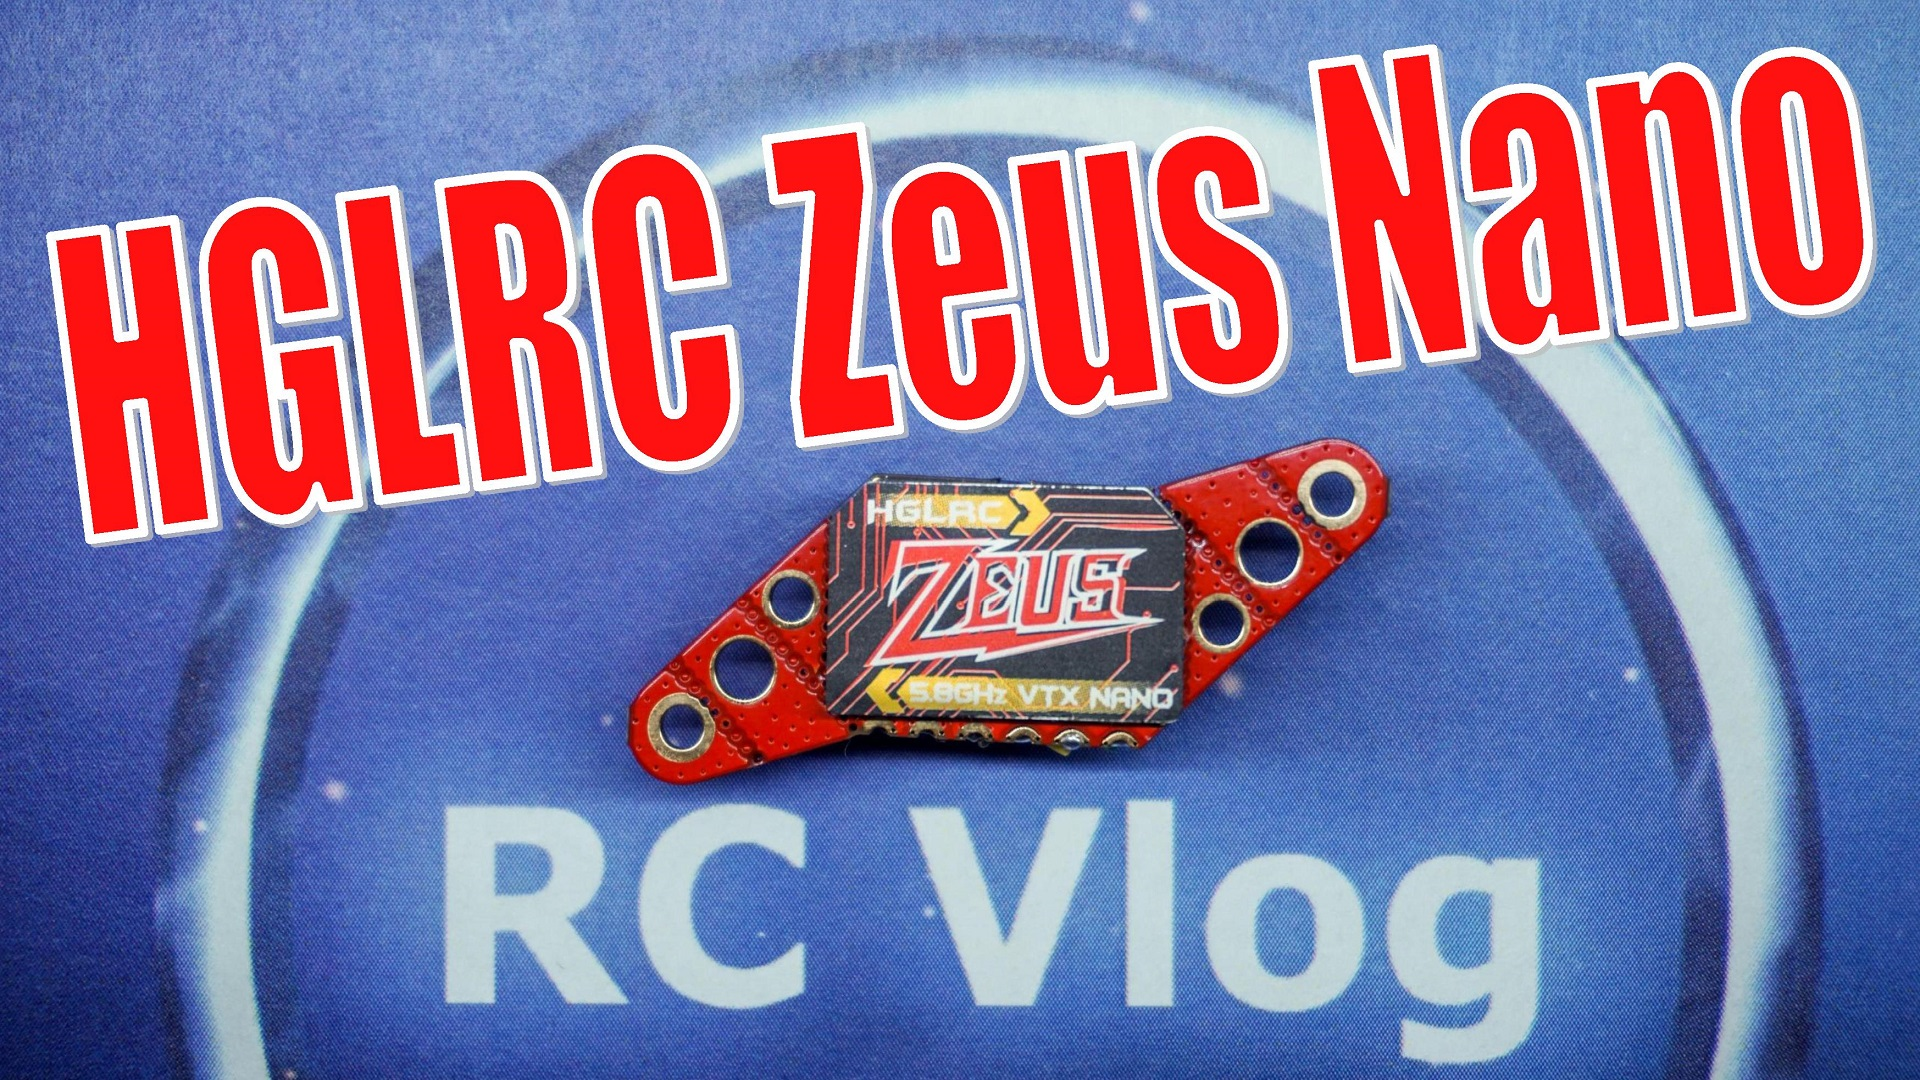 HGLRC Zeus nano VTX 25/100/200/350mW 5.8Ghz 40CH 16x16mm 20x20mm 25.5x25.5mm For FPV Racing Drone